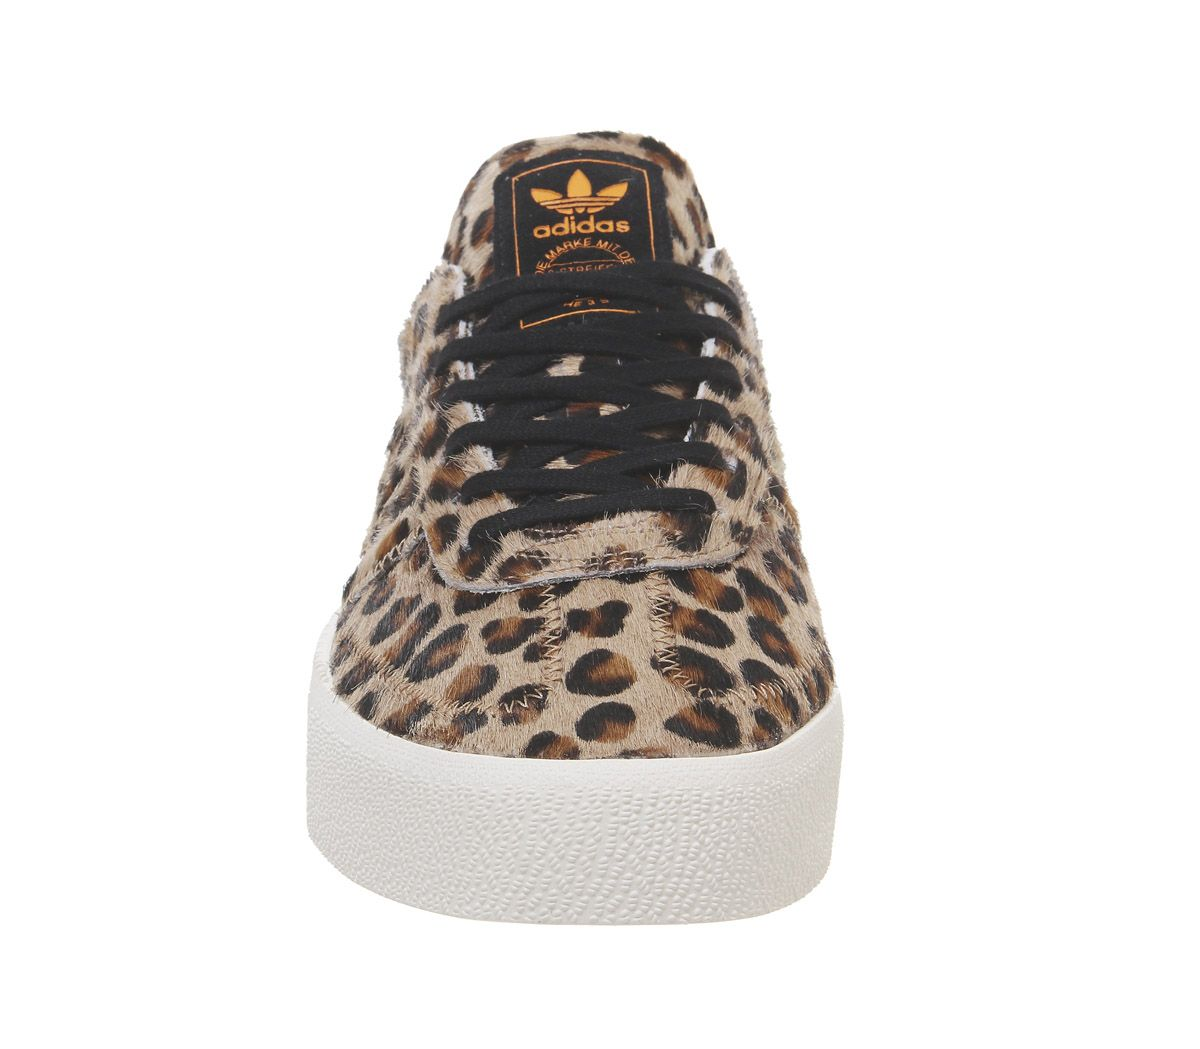 71c1d57fd6af76 adidas Samba Rose Trainers Leopard Black Off White - Hers trainers